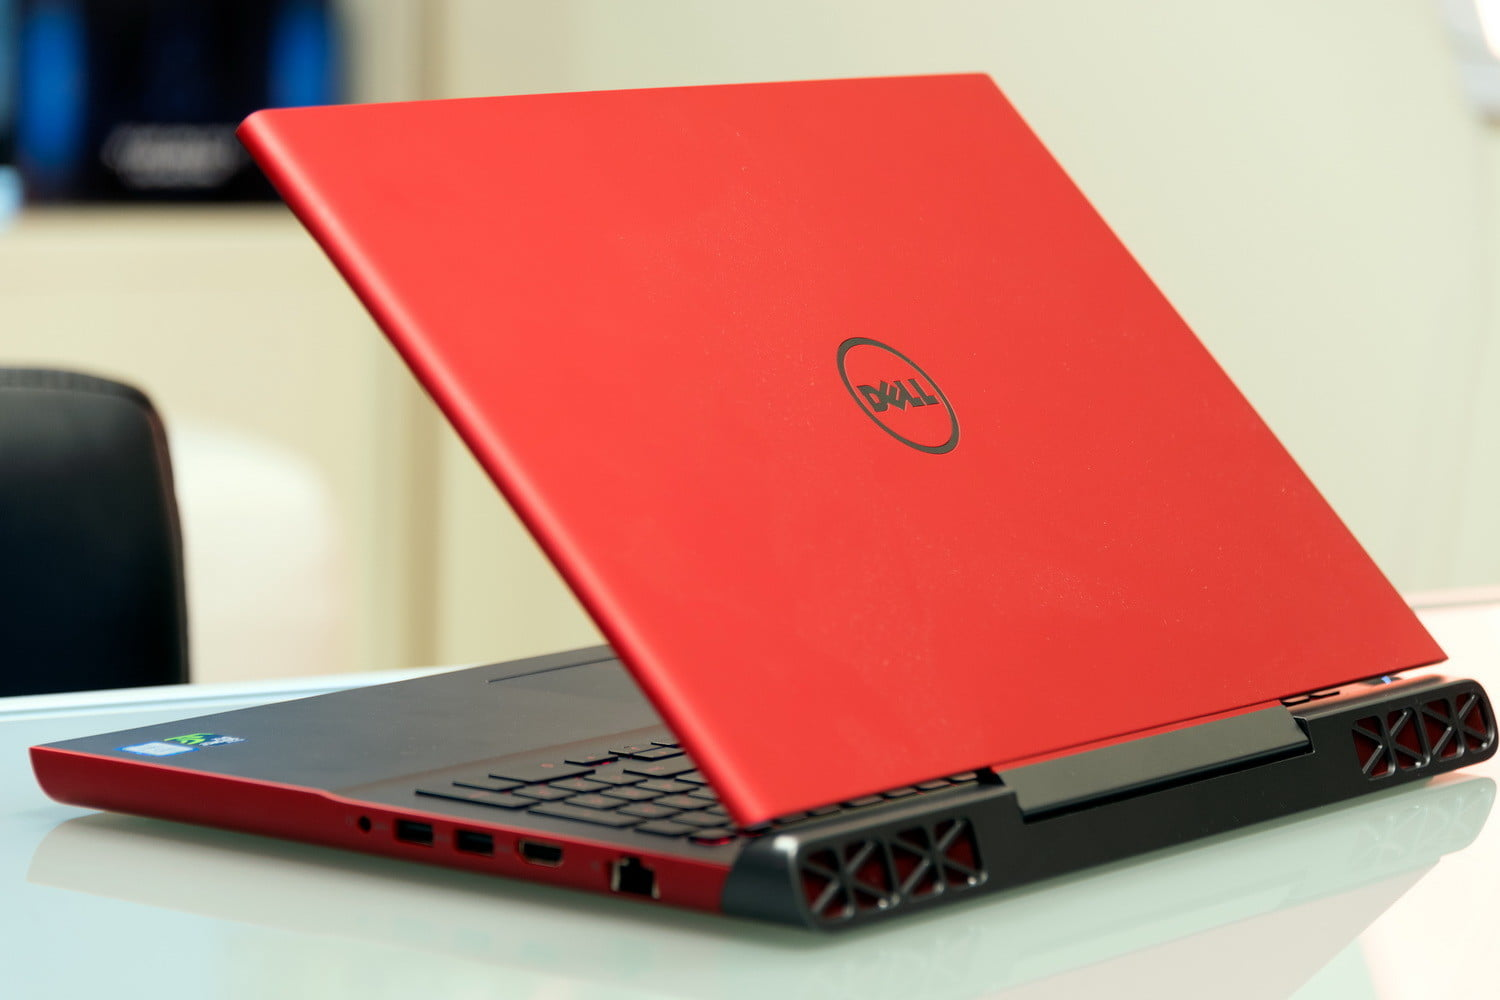 dell inspiron 15 gaming budget gaming laptop review digital trends. Black Bedroom Furniture Sets. Home Design Ideas